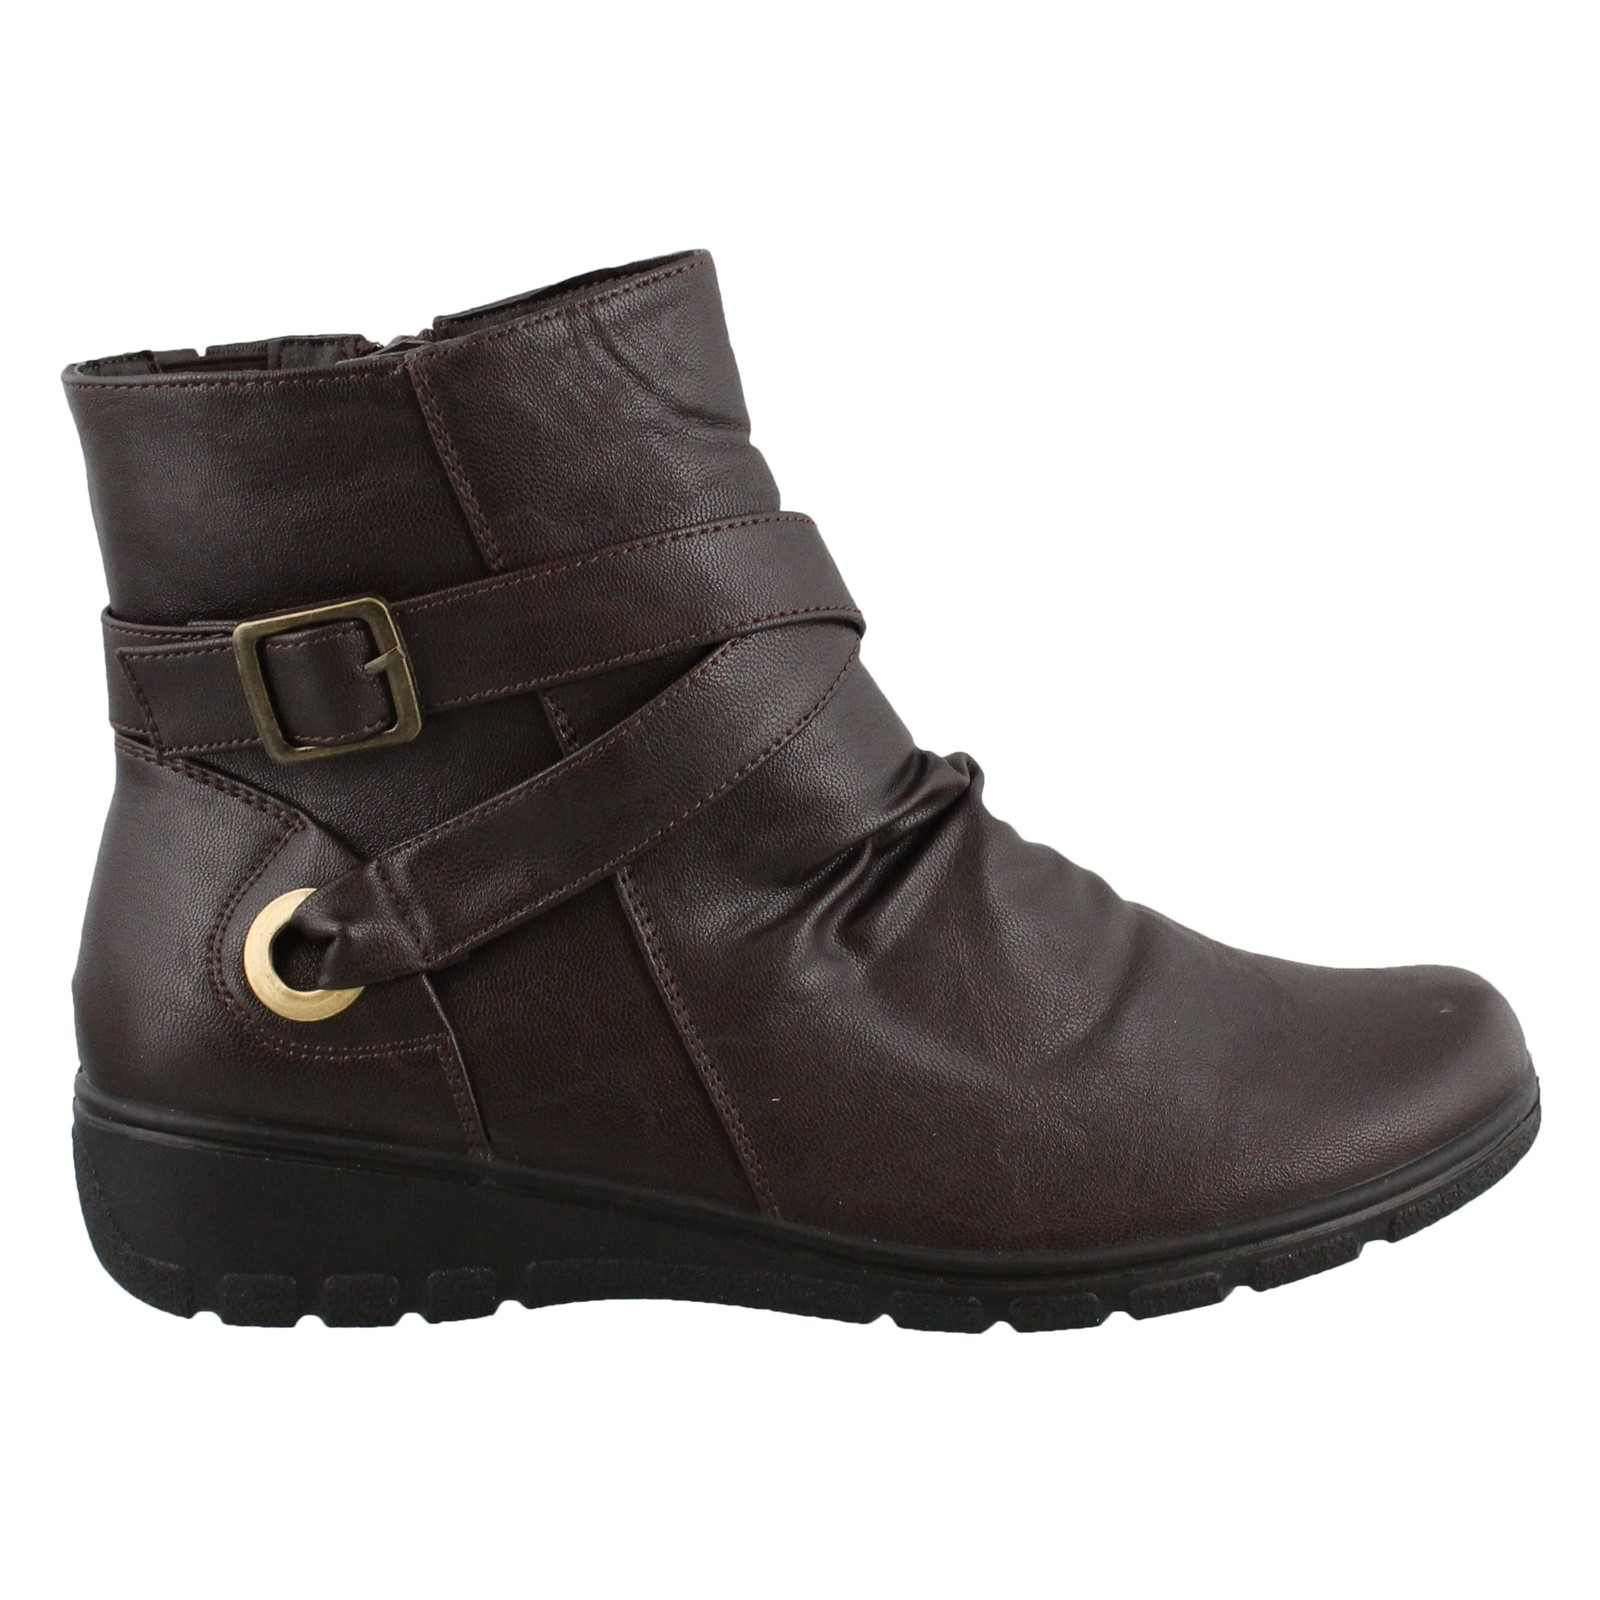 Women's Easy Street, Questa Ankle Boots